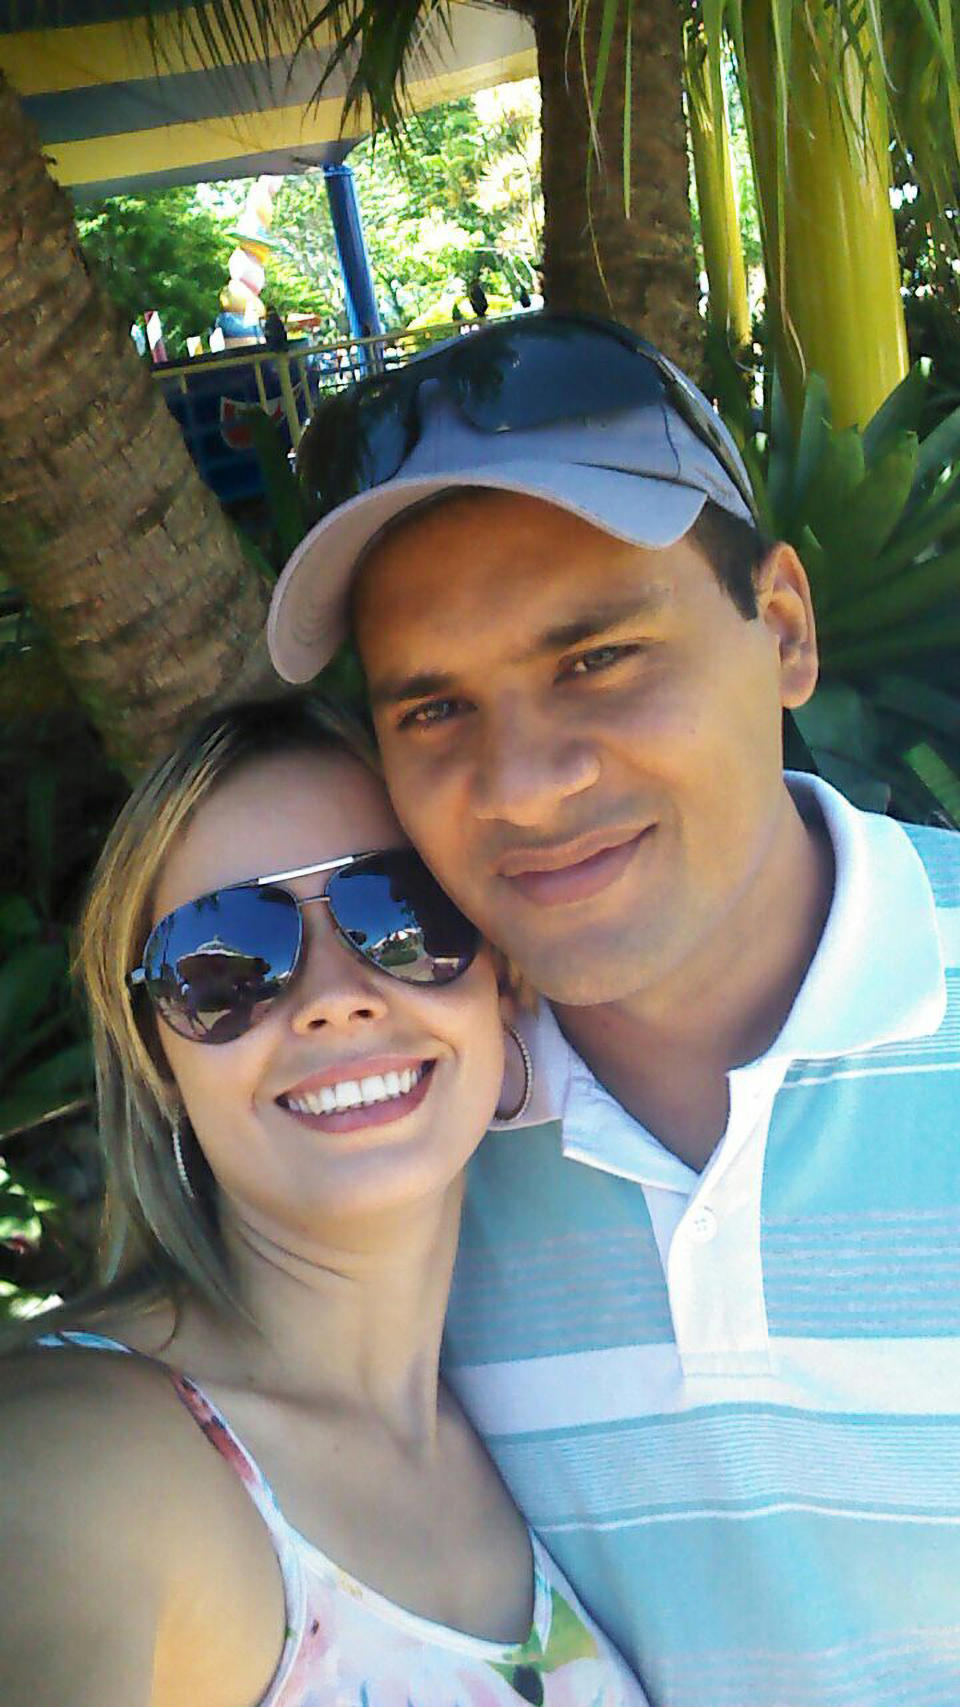 The 37-year-old (right) has three children. He is pictured here with his wife. Source: Newsflash/Australscope